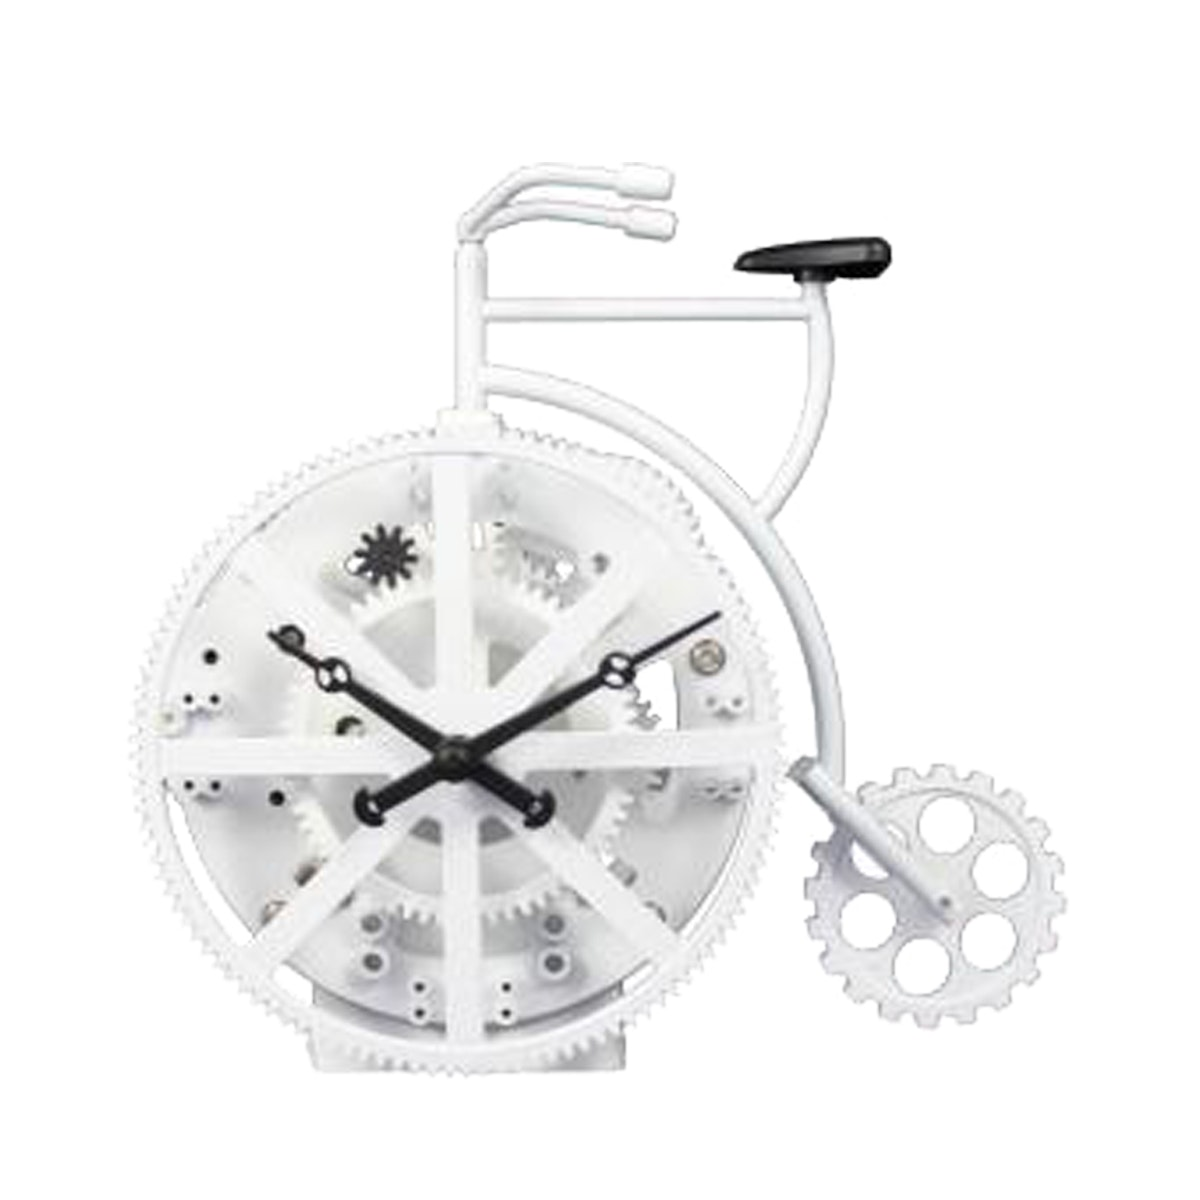 Gearclock Bike Table Clock White